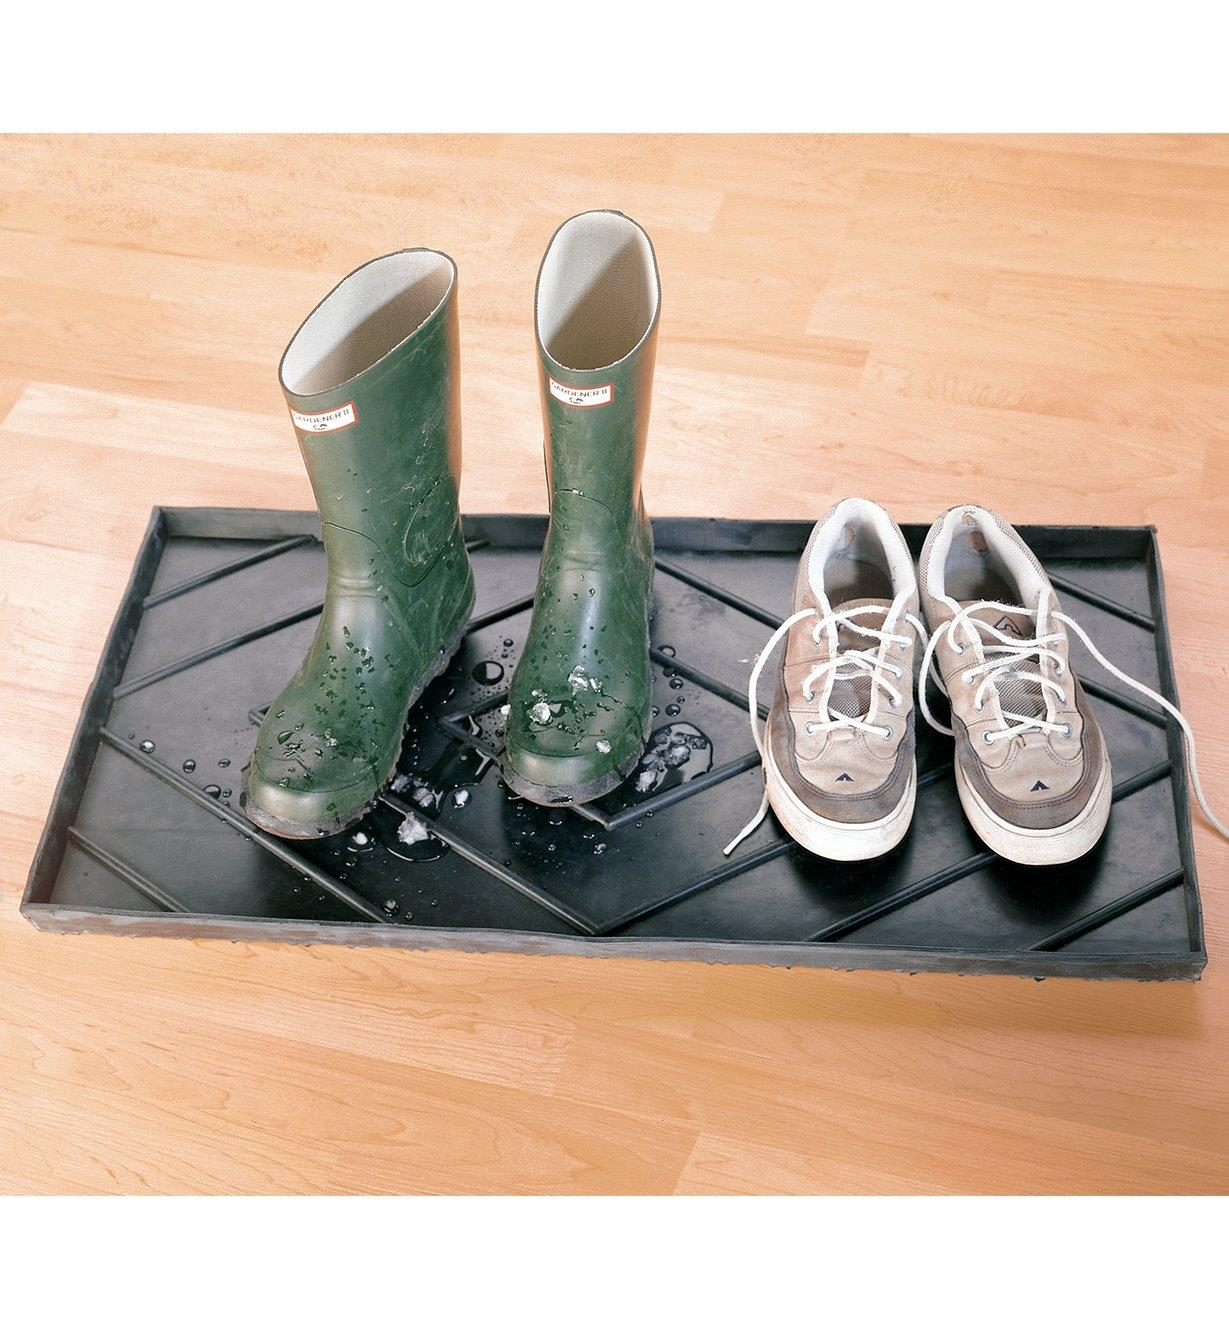 A pair of rubber boots and a pair of runners on the Rubber Boot Tray